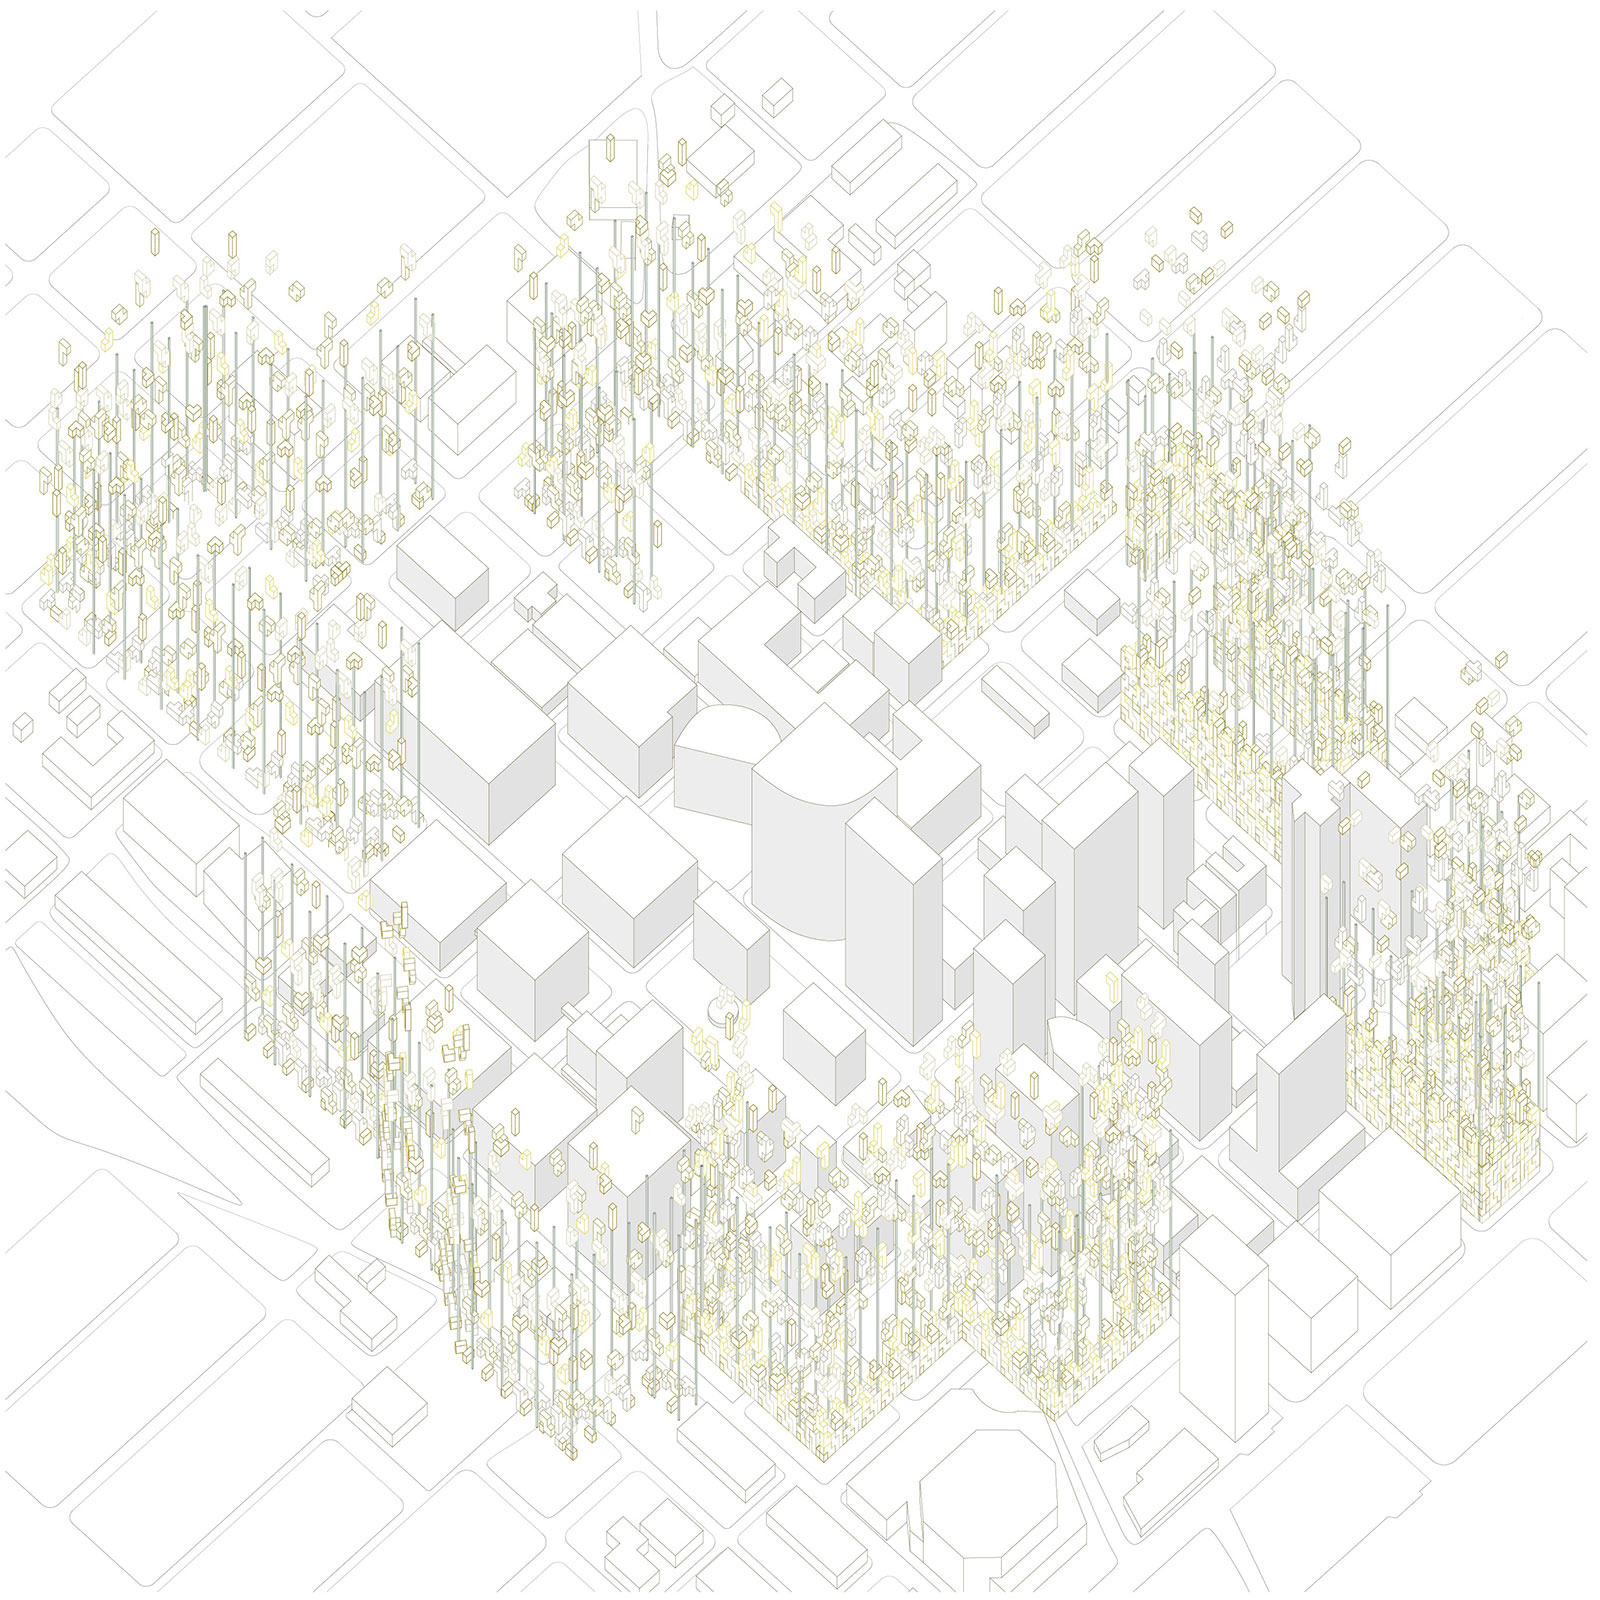 Exploded axonometric drawing showing the growth of housing frames around downtown Phoenix by student Marcia Ibarra